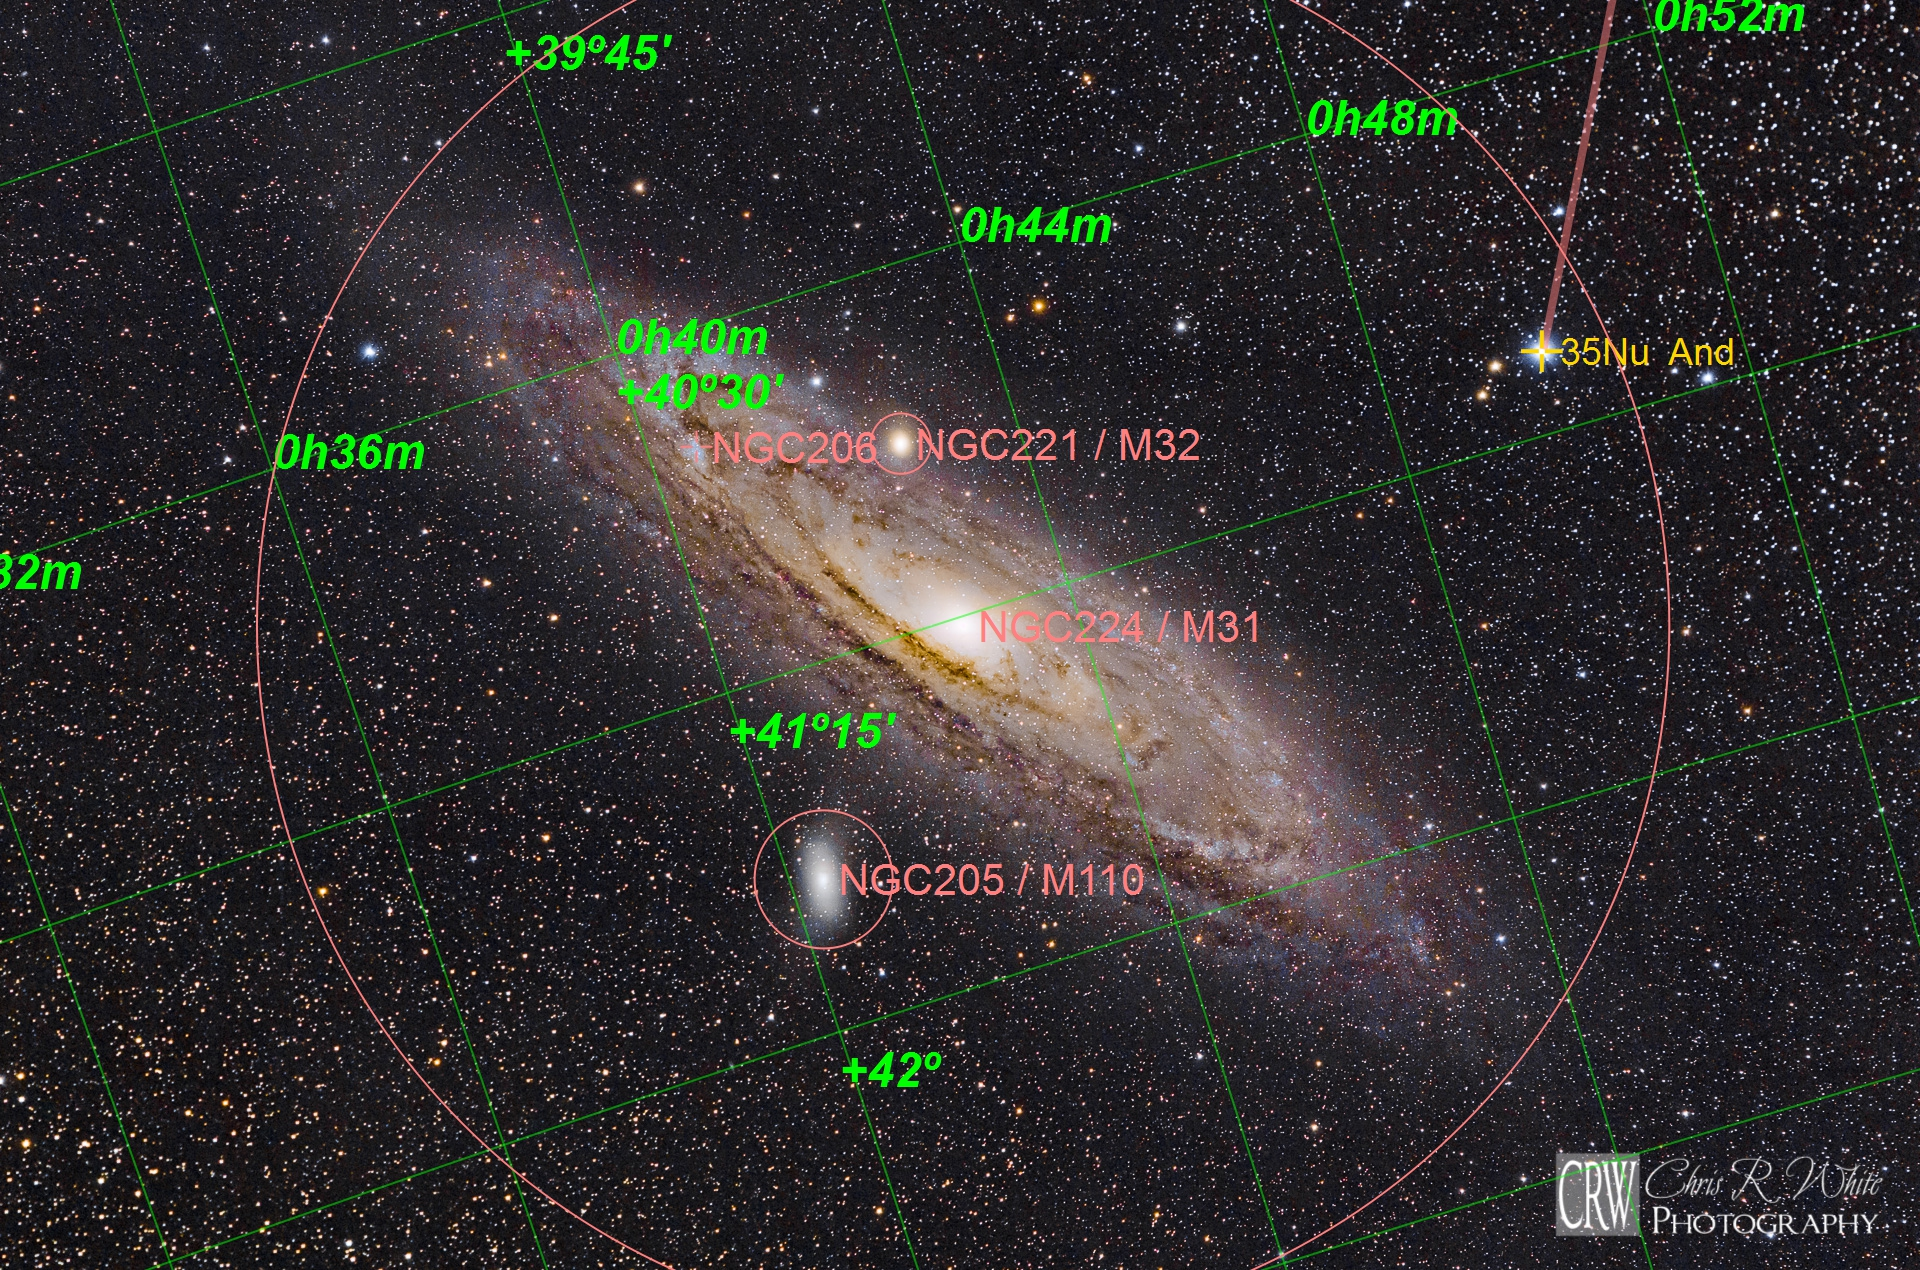 2015-09-12 Astrophotography: The Great Galaxy Andromeda